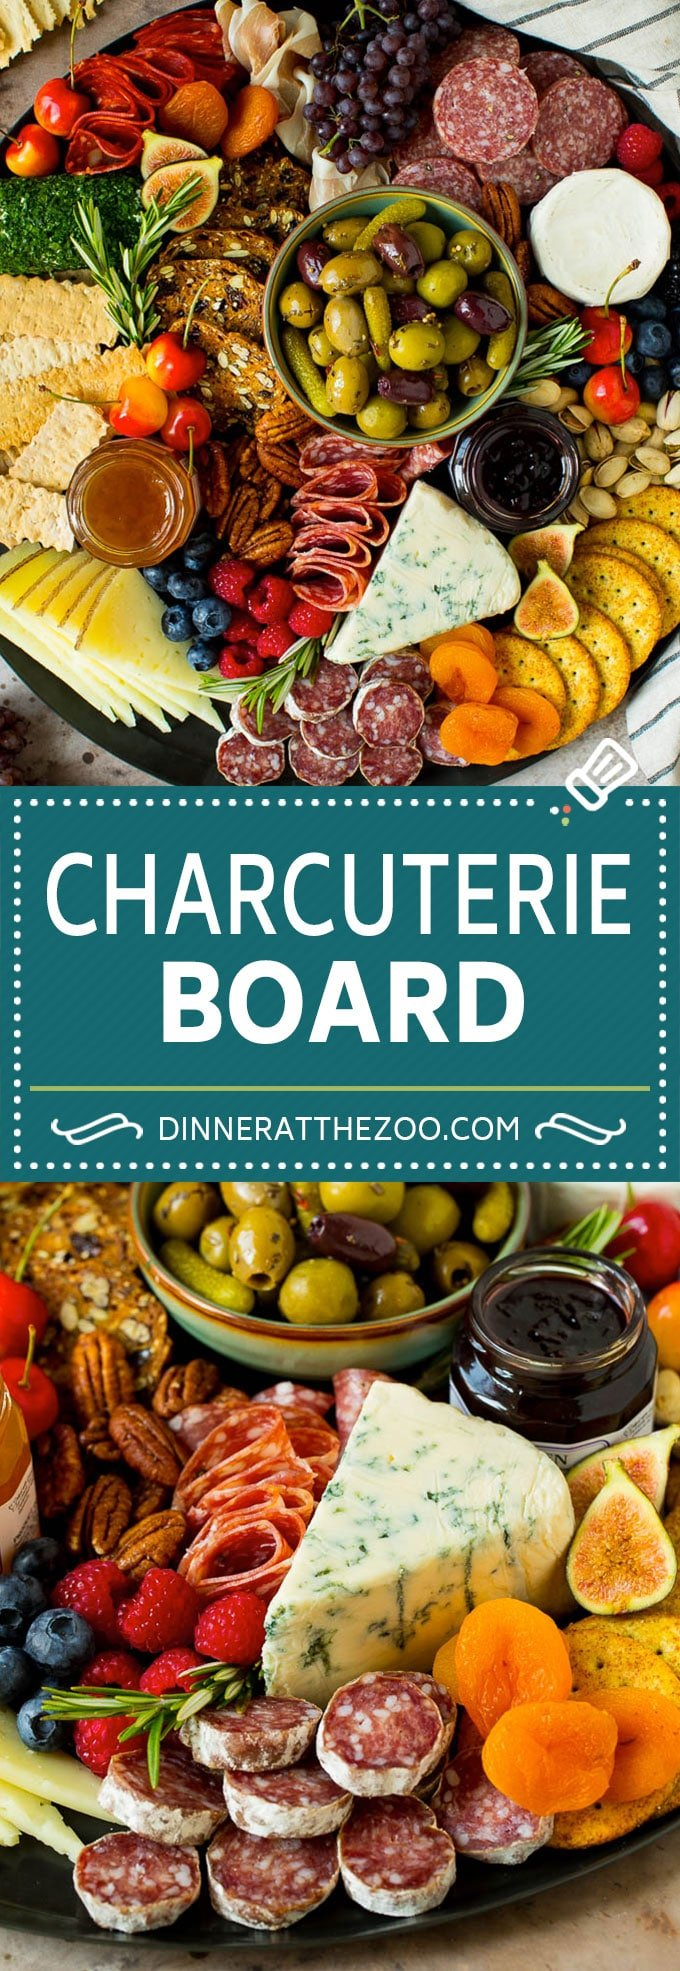 A complete guide on how to put together the best charcuterie board, with a selection of meats, cheeses, crackers, fruit, veggies and other snack foods.